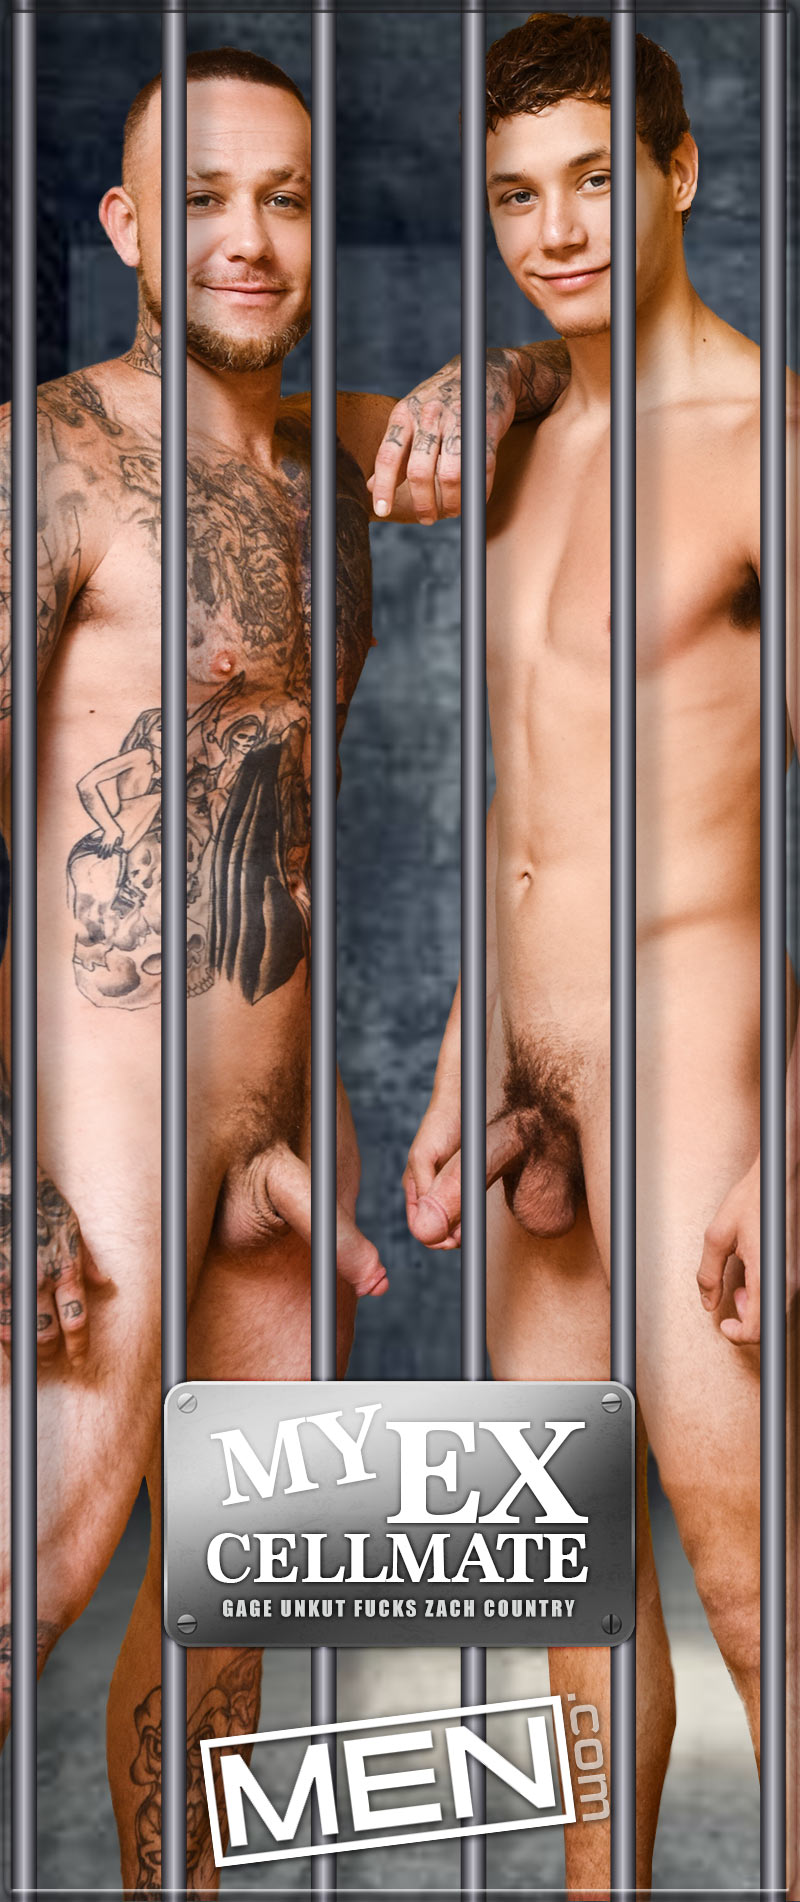 My Ex Cellmate (Gage Unkut Fucks Zach Country) at Str8 To Gay